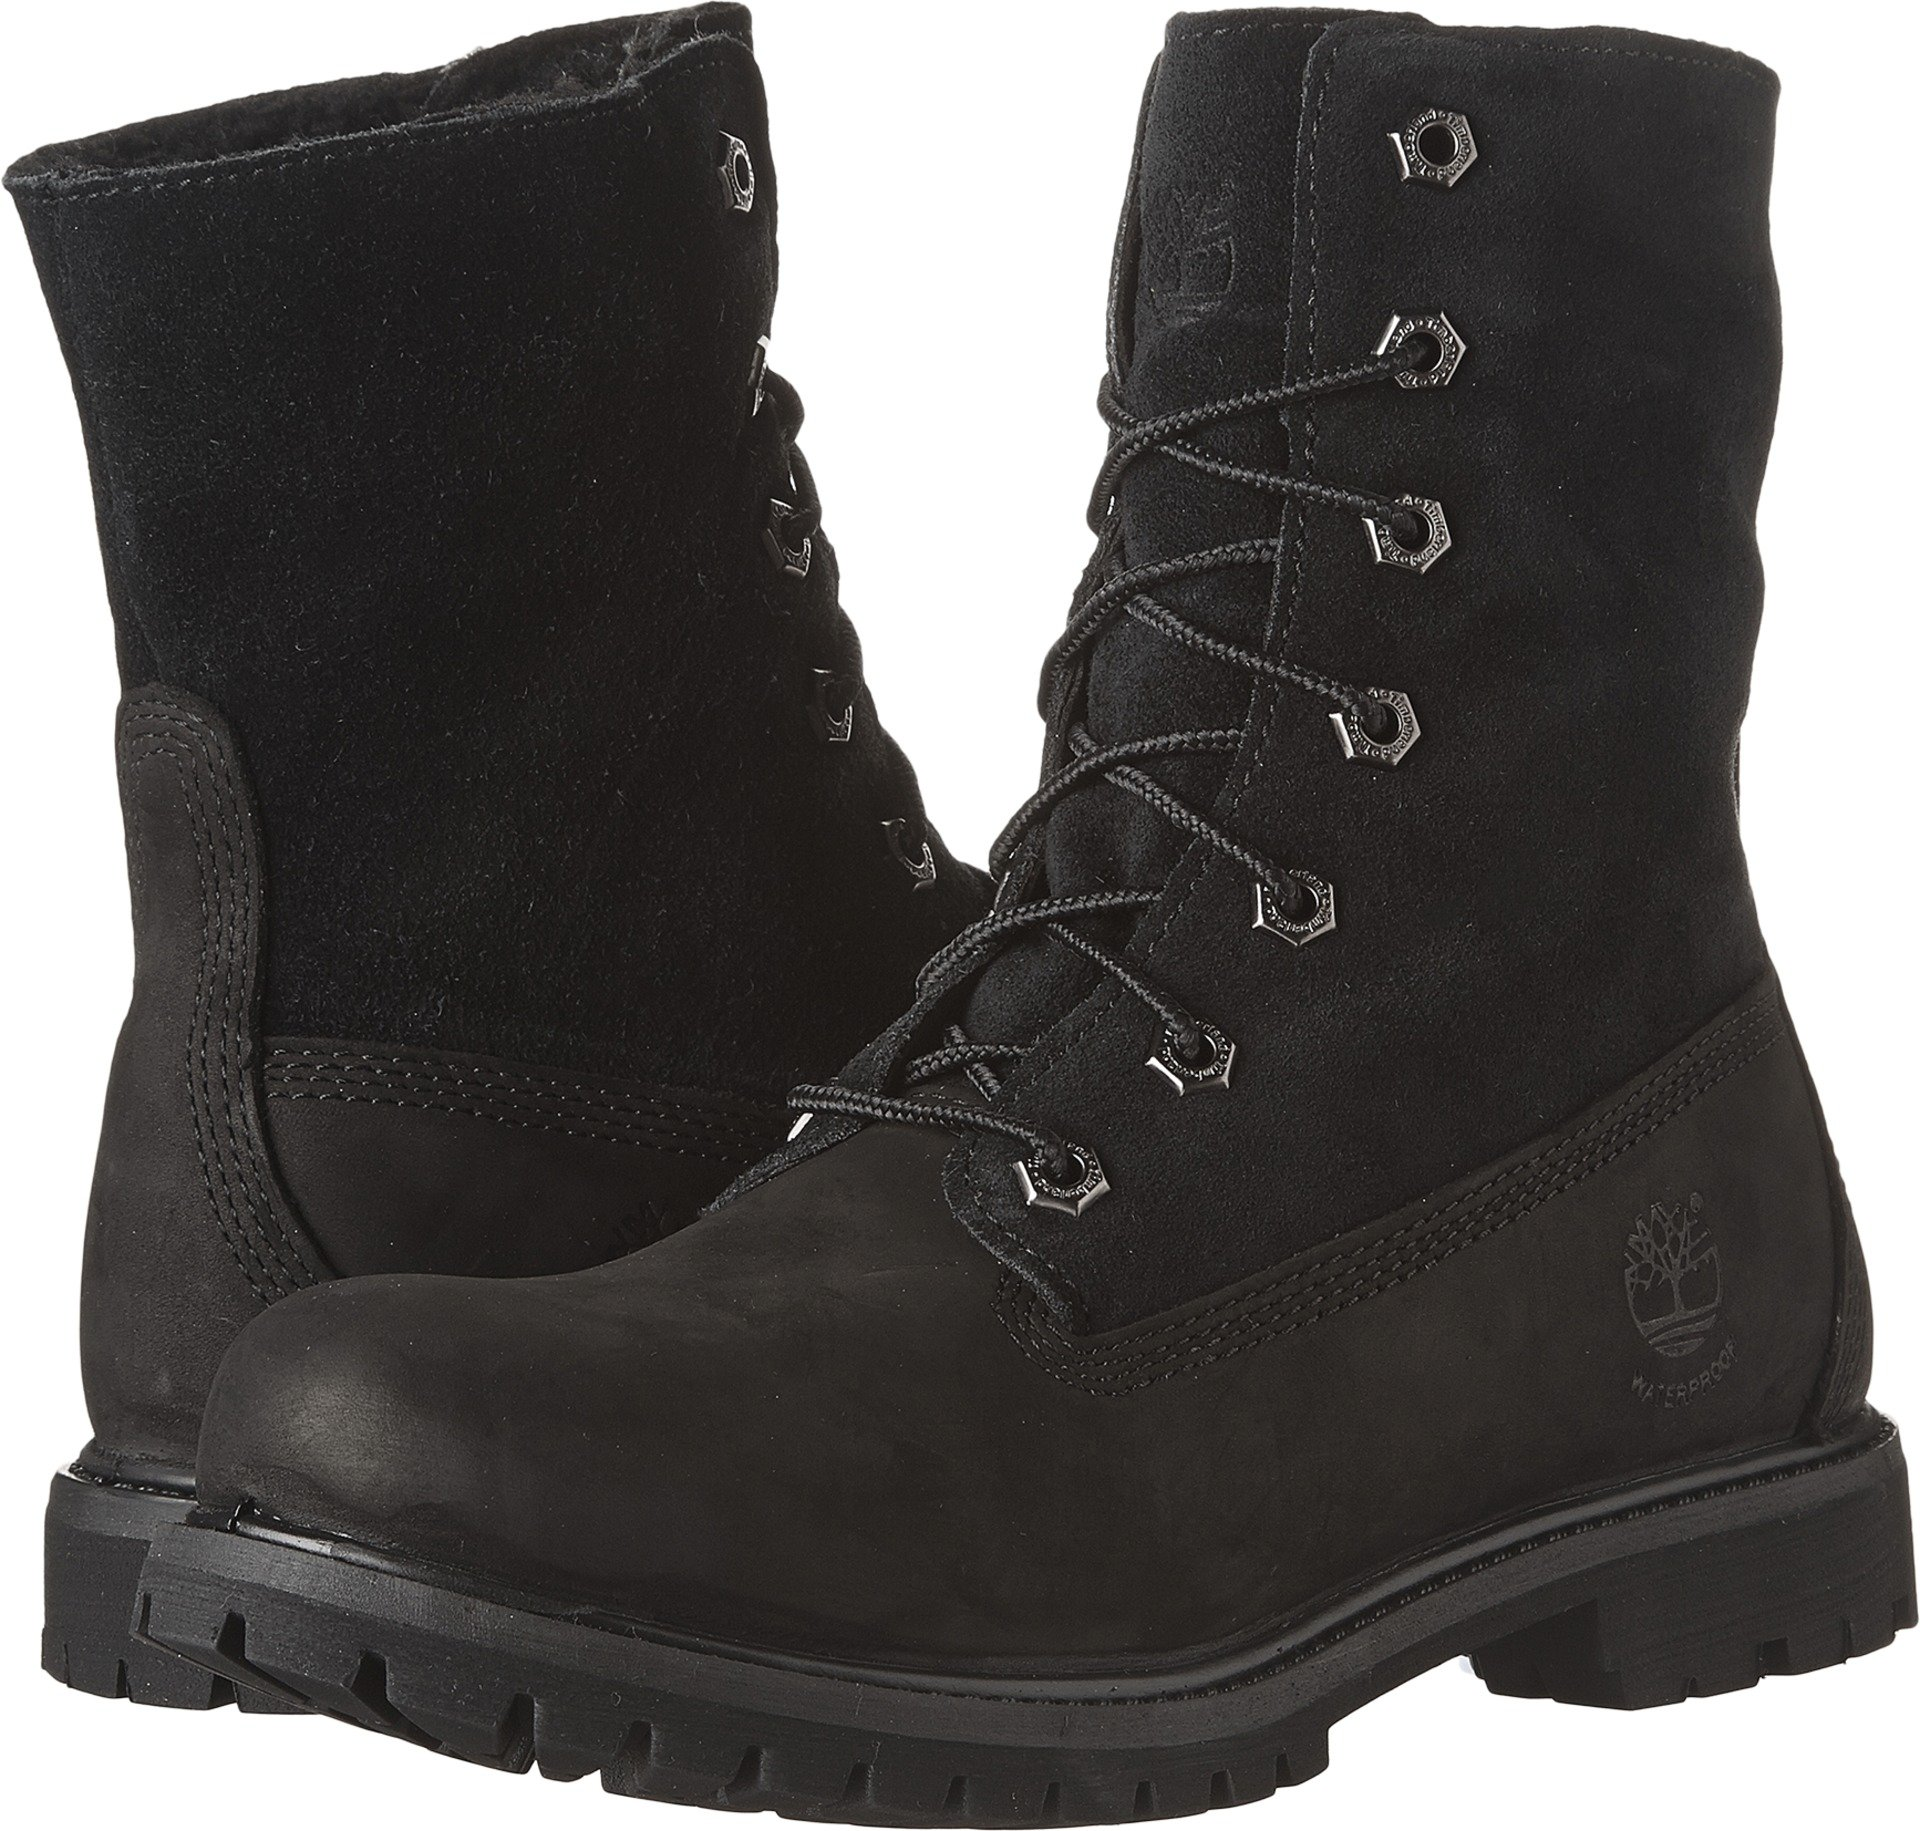 Timberland Womens Authentics Teddy Fleece Waterproof Fold-Down Black Nubuck Boot - 6.5 M